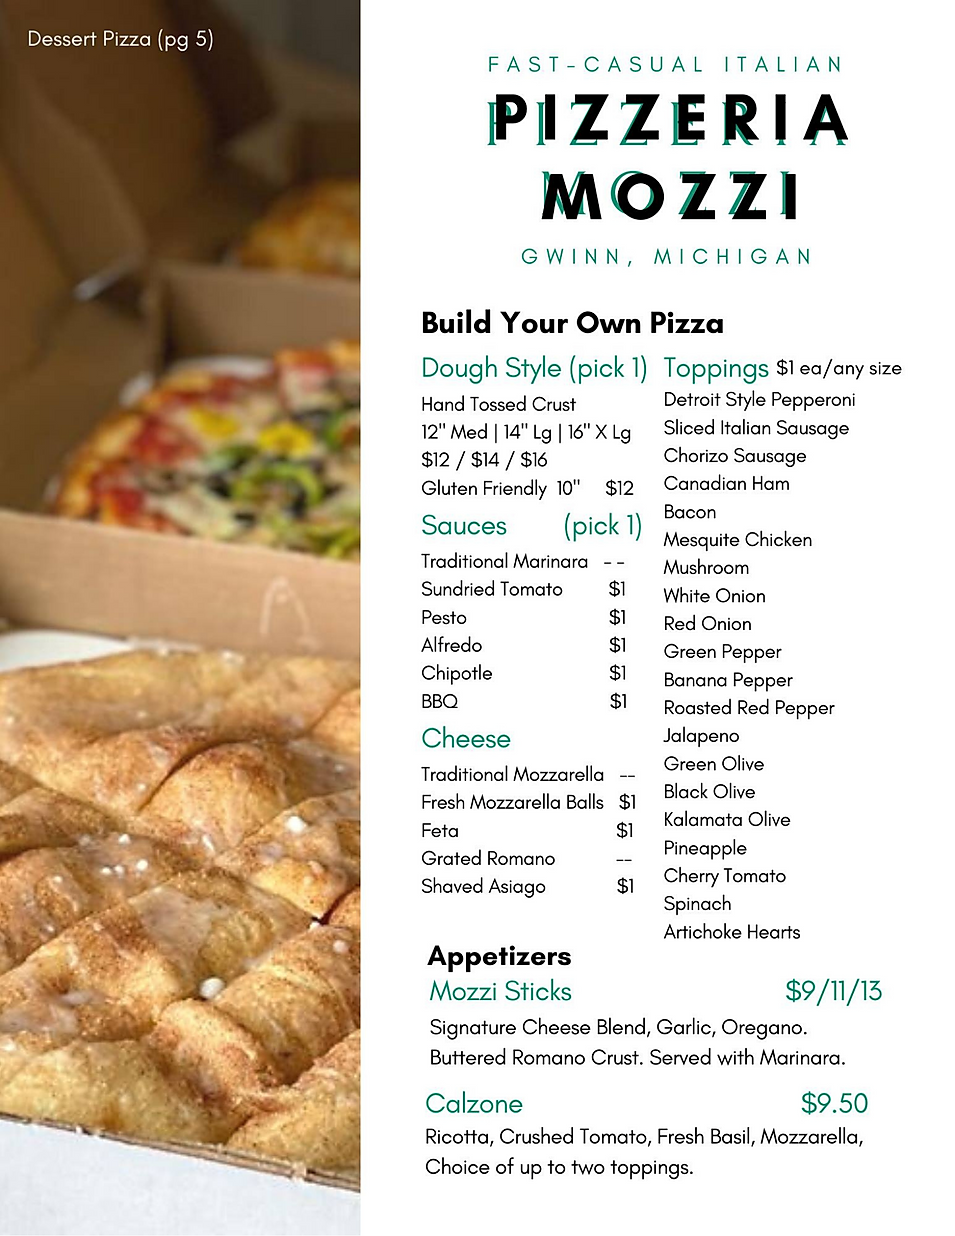 Pizzeria Mozzi fast casual italian pizza pasta dessert pizza menu deals marquette now